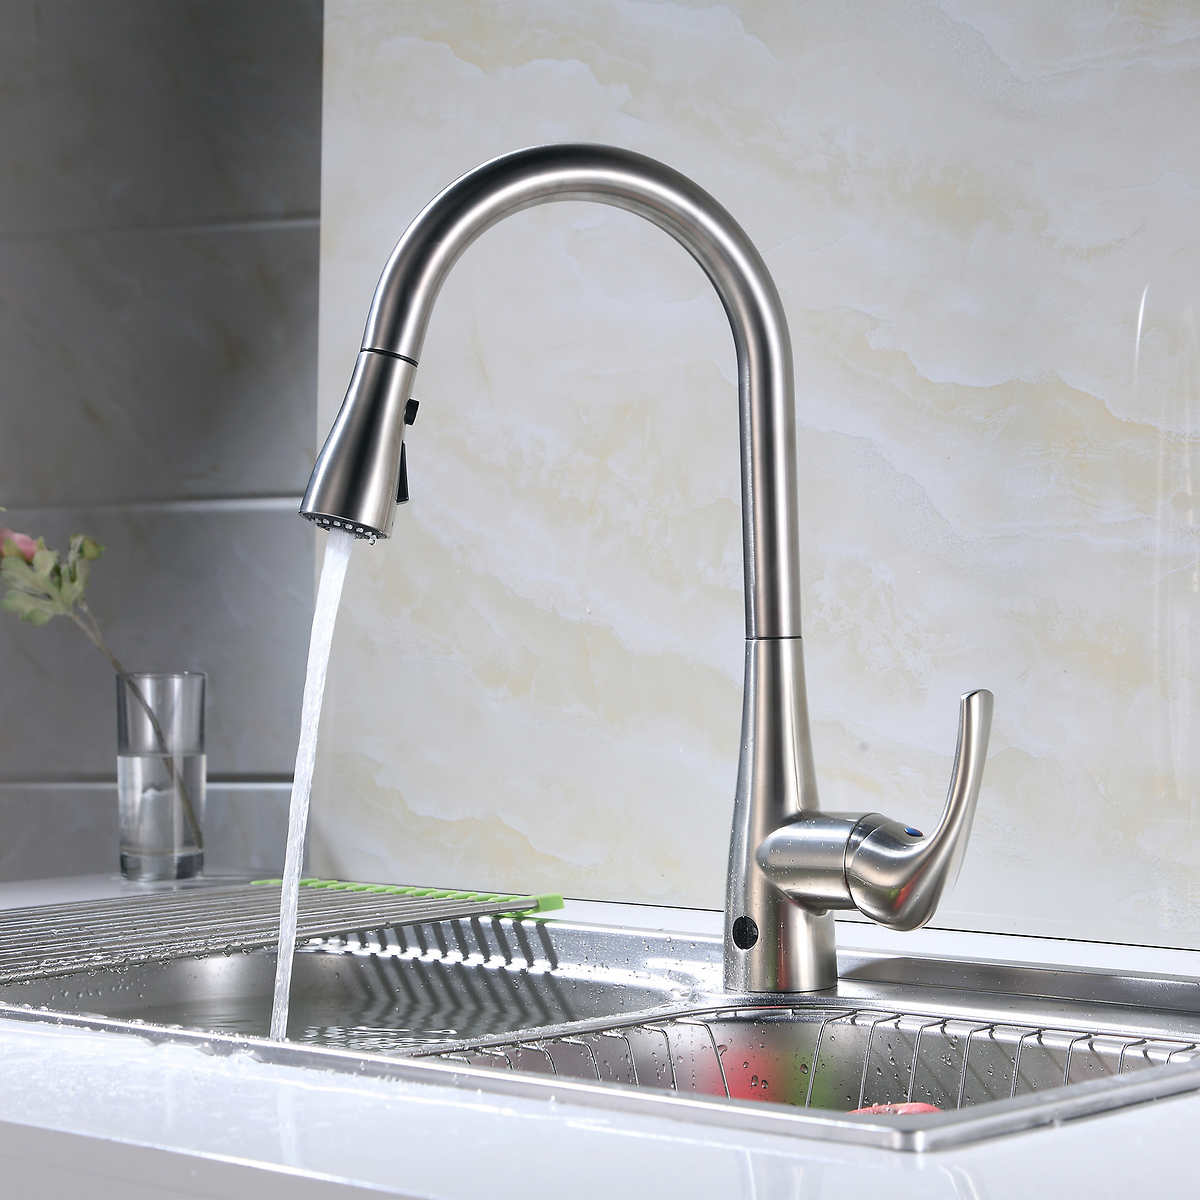 Flow Motion Activated Pull-Down Kitchen Faucet